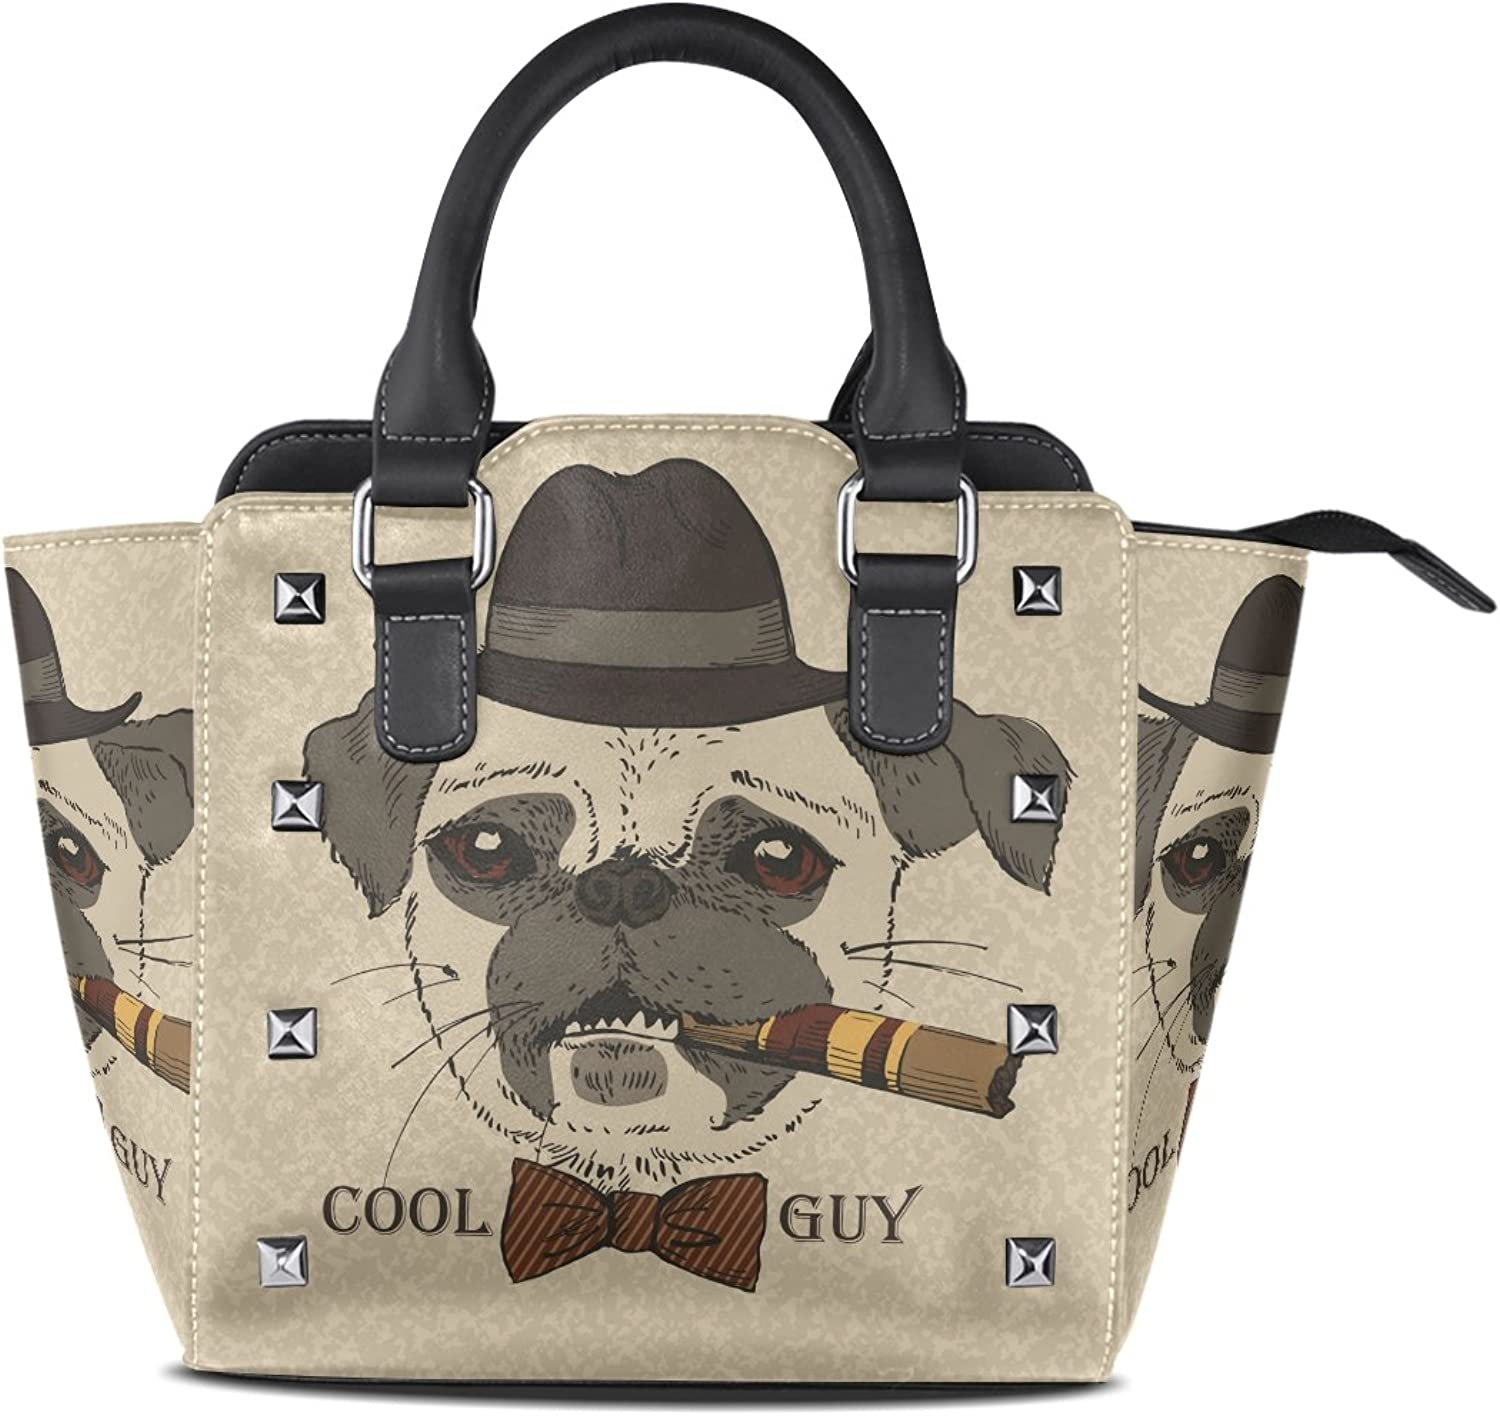 Sunlome Portrait of Pug Dog with Cigar Cool Guy Gangster Look Print Handbags Women's PU Leather Top-Handle Shoulder Bags